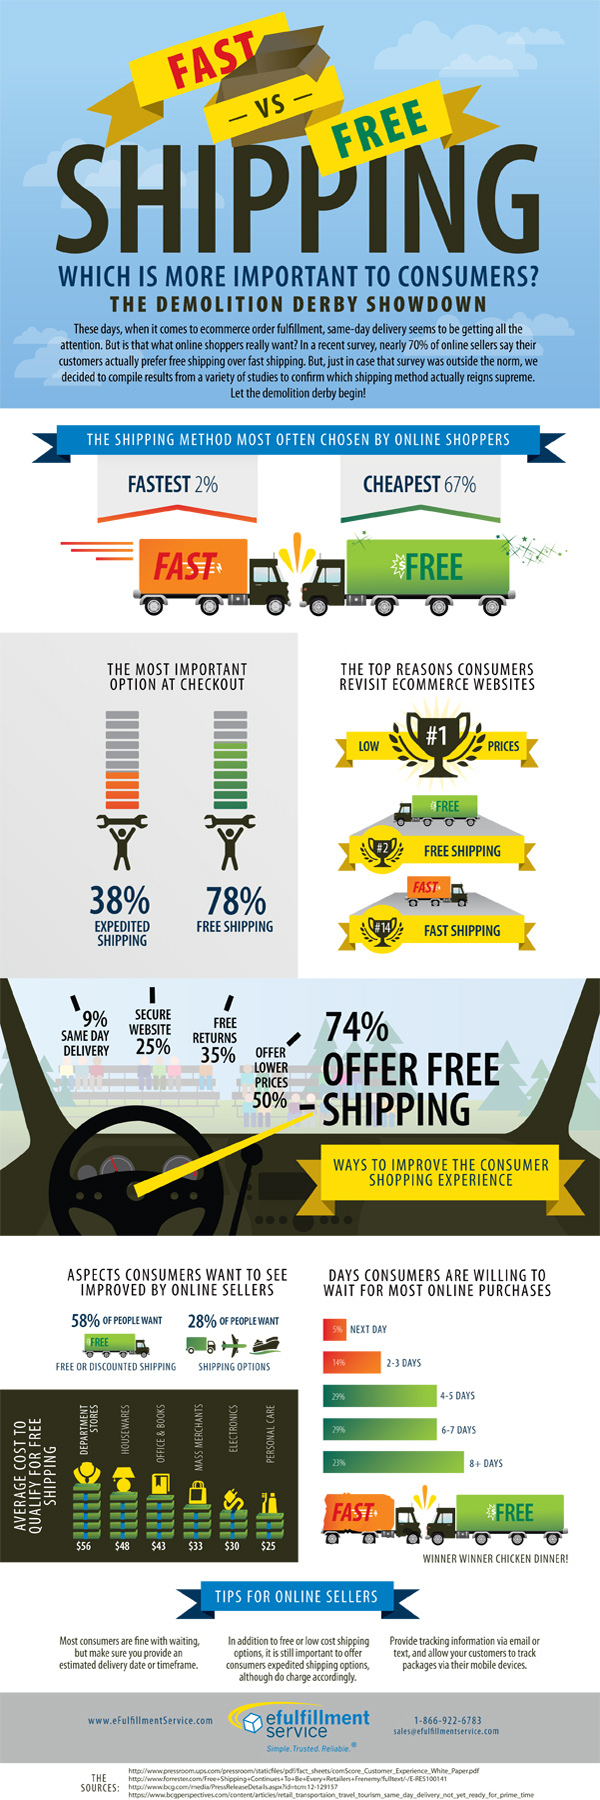 Efulfillment_Infographic_final